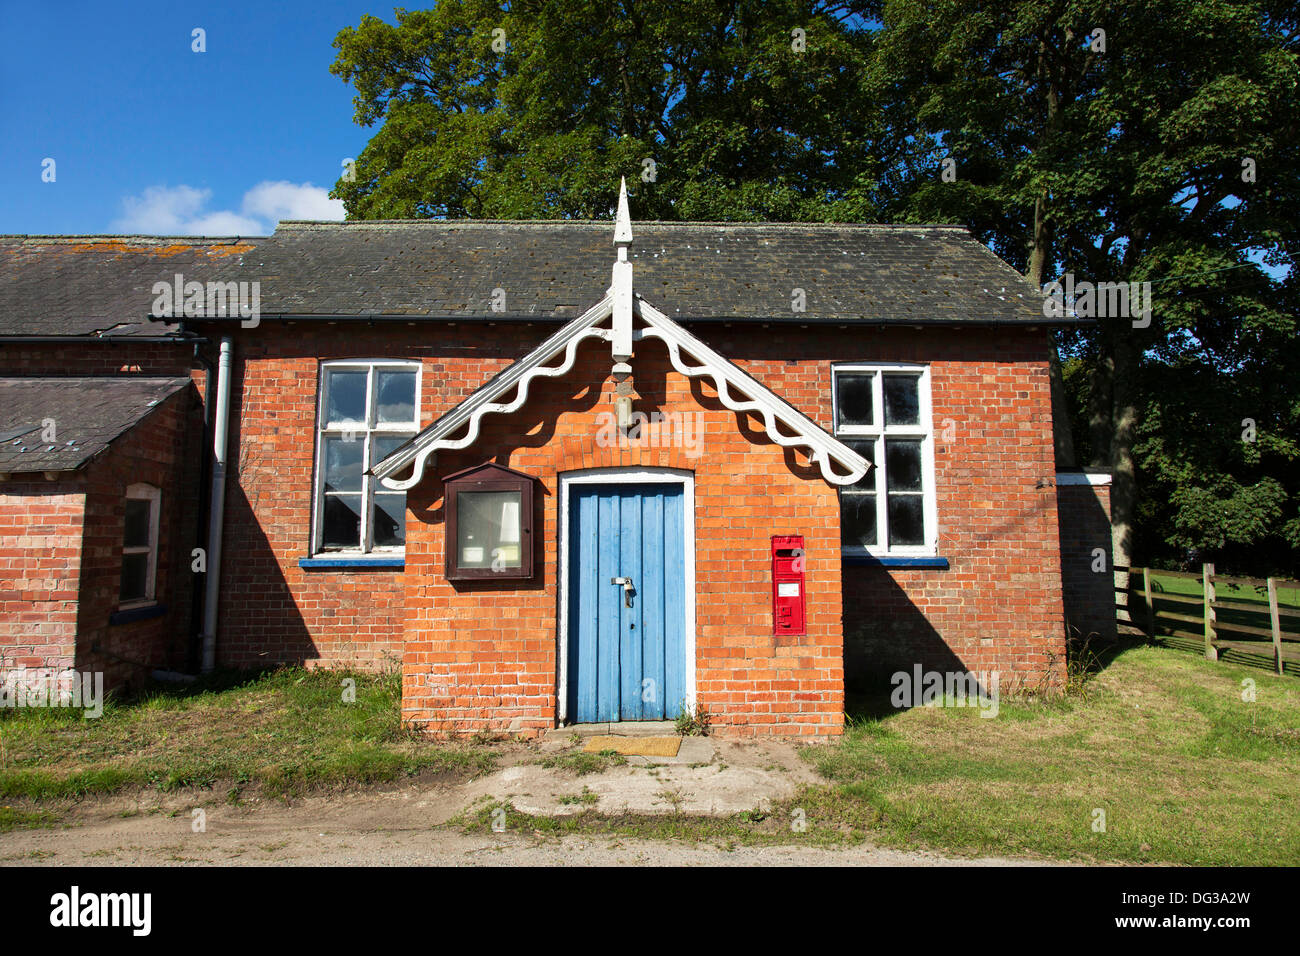 A village hall in Lincolnshire, England, U.K. - Stock Image